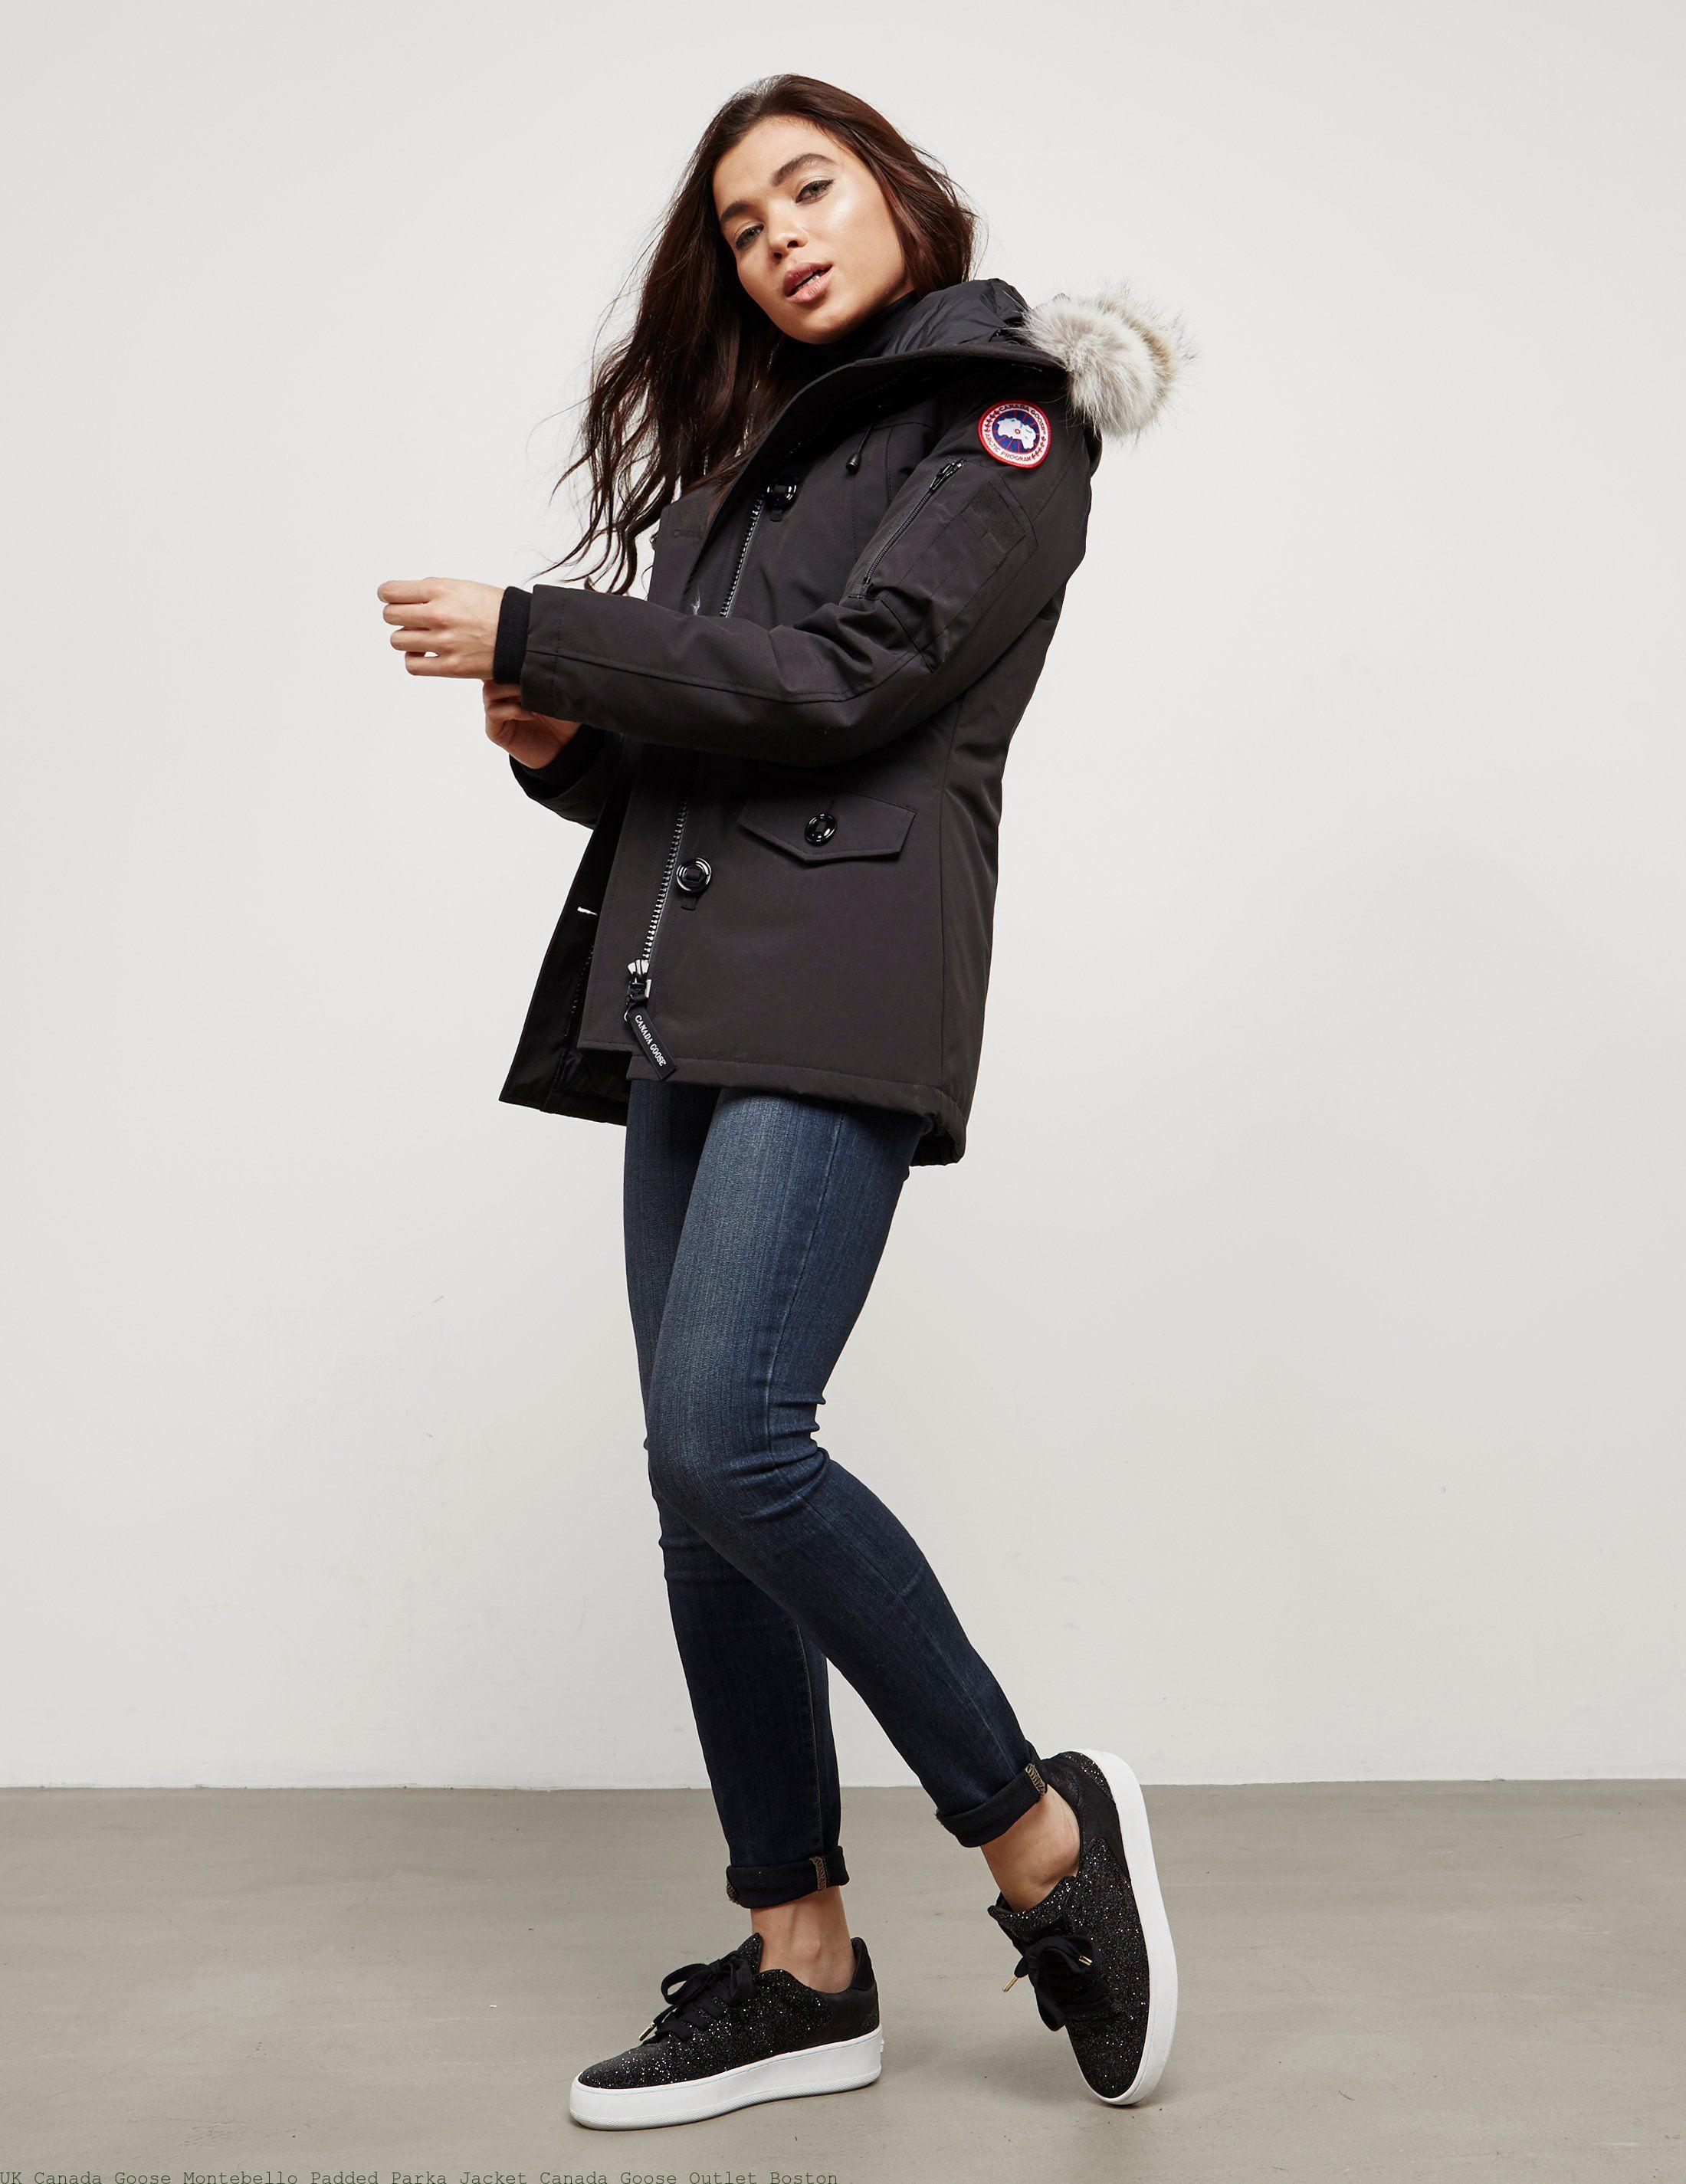 competitive price 8e1d2 9c277 UK Canada Goose Montebello Padded Parka Jacket Canada Goose Outlet Boston